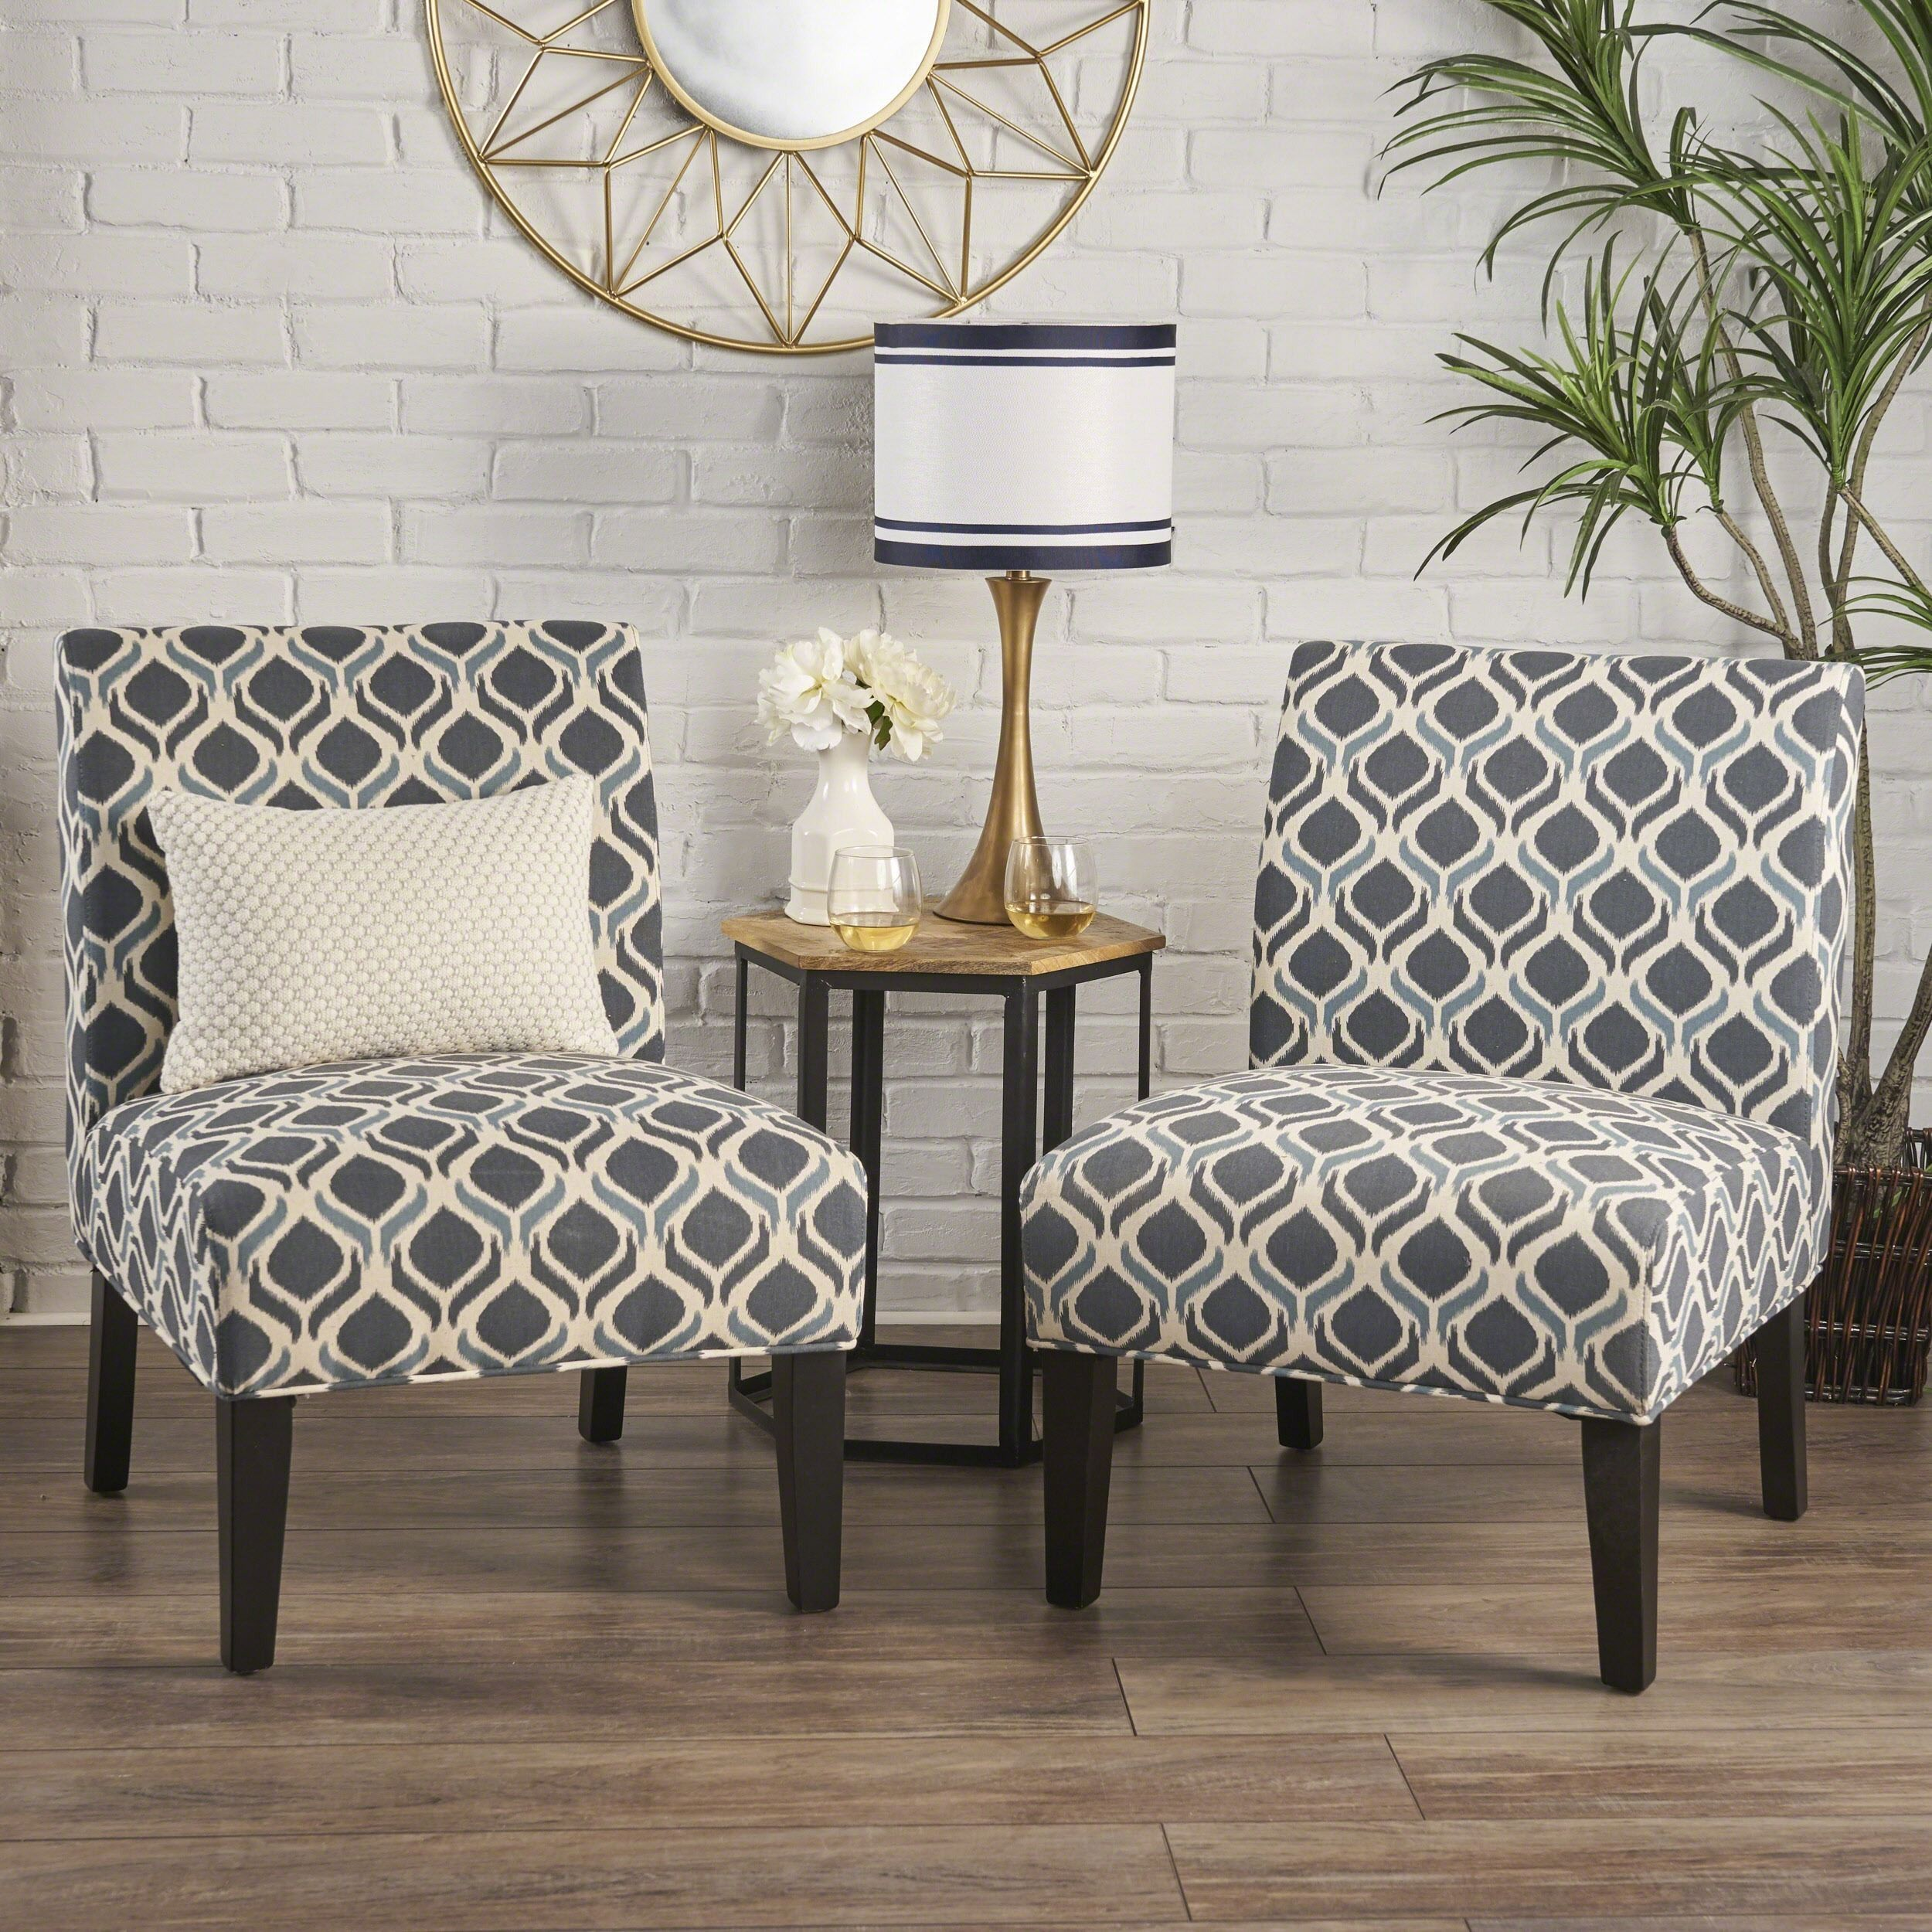 Caminetti Quadrifacciali Printed Accent Chairs